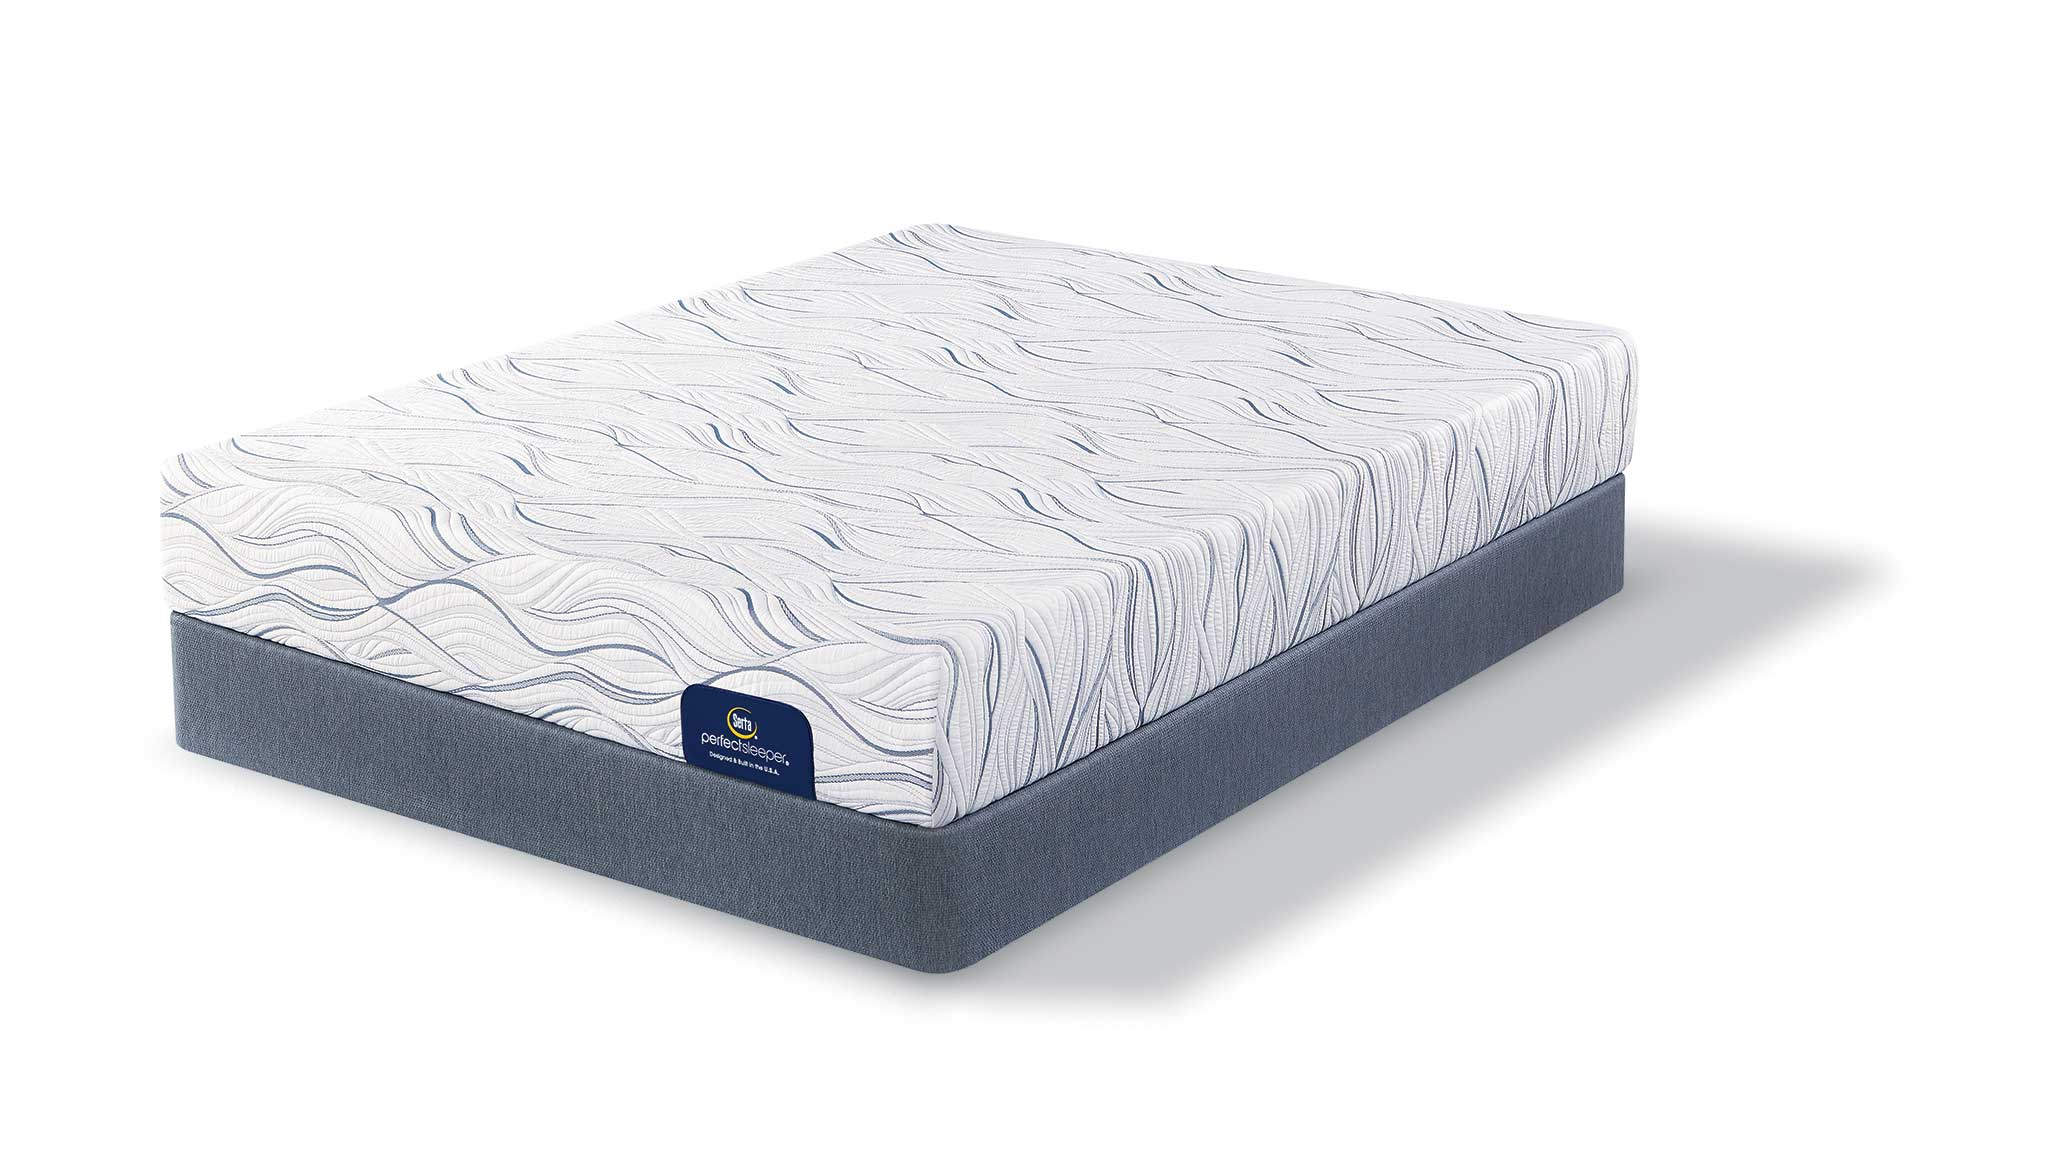 Molenda Foam Best Mattress Best Mattress